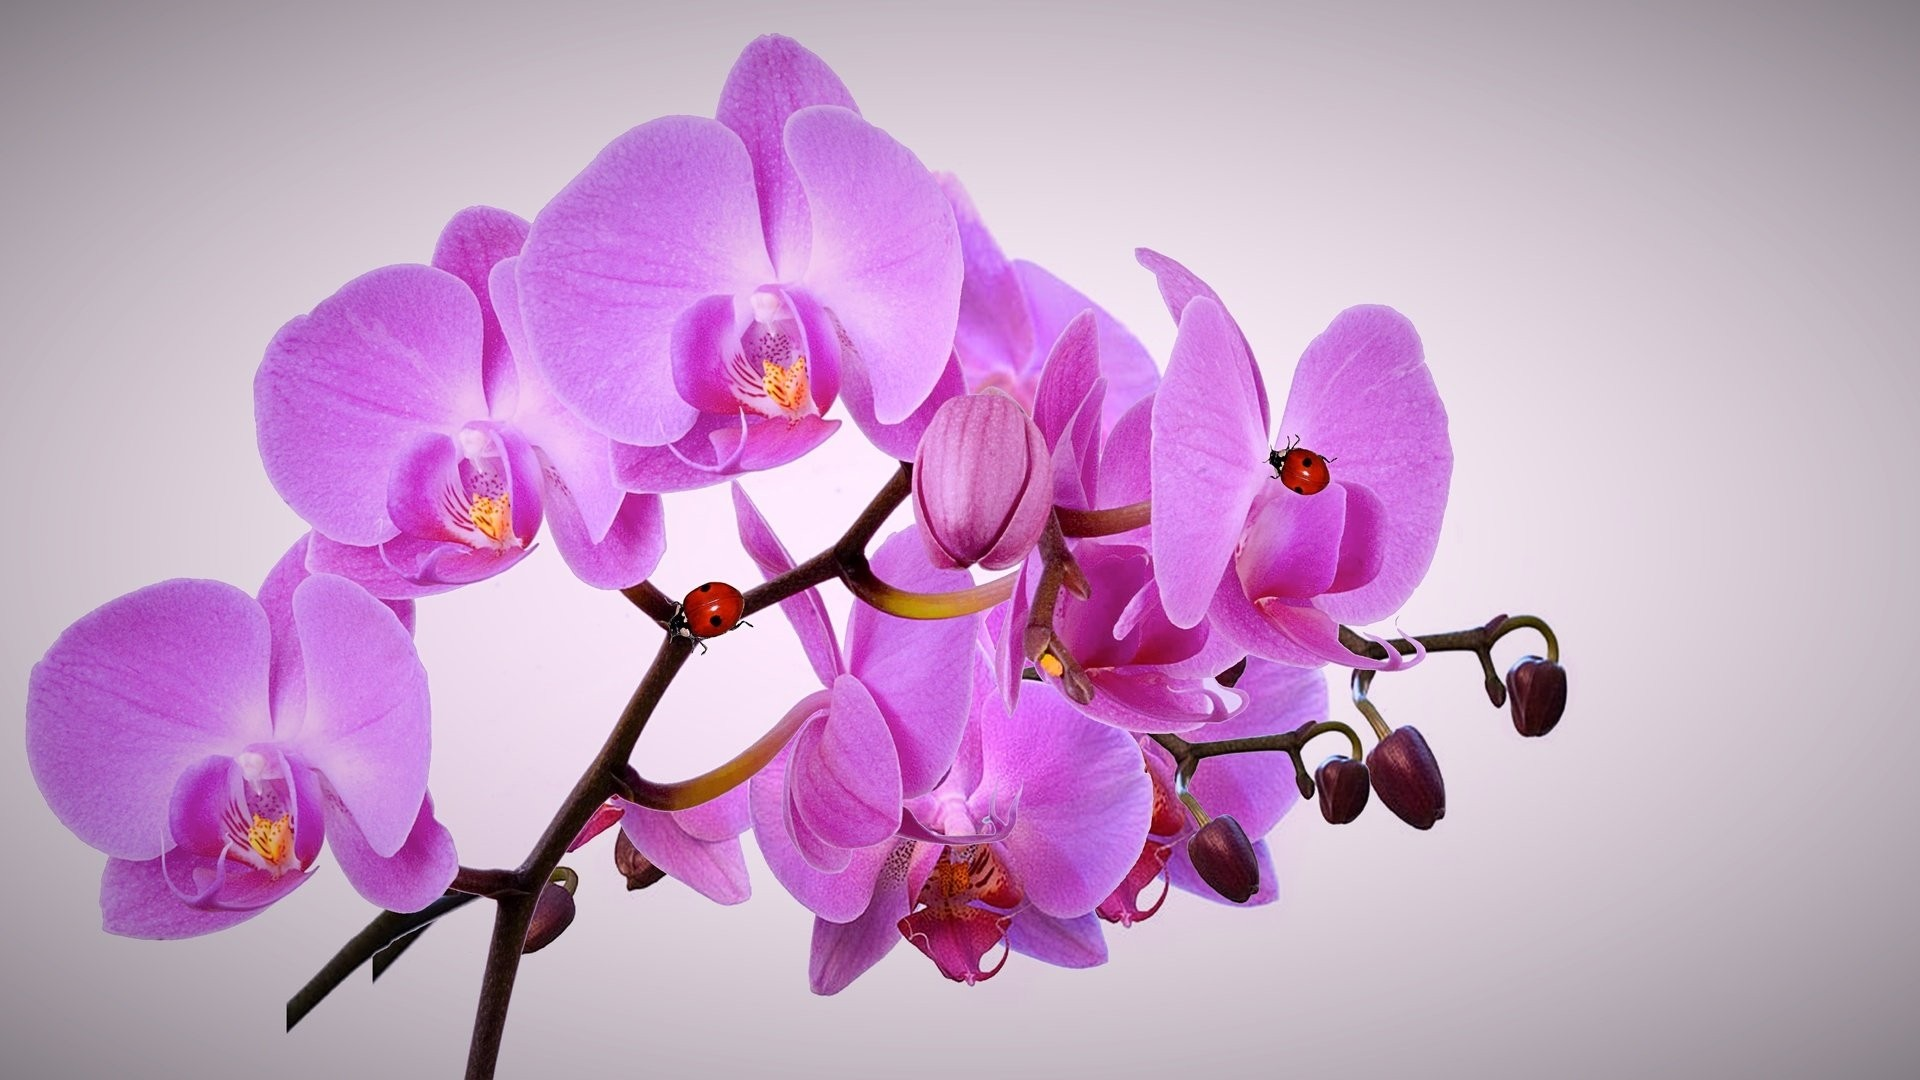 Orchid Wallpaper Picture hd